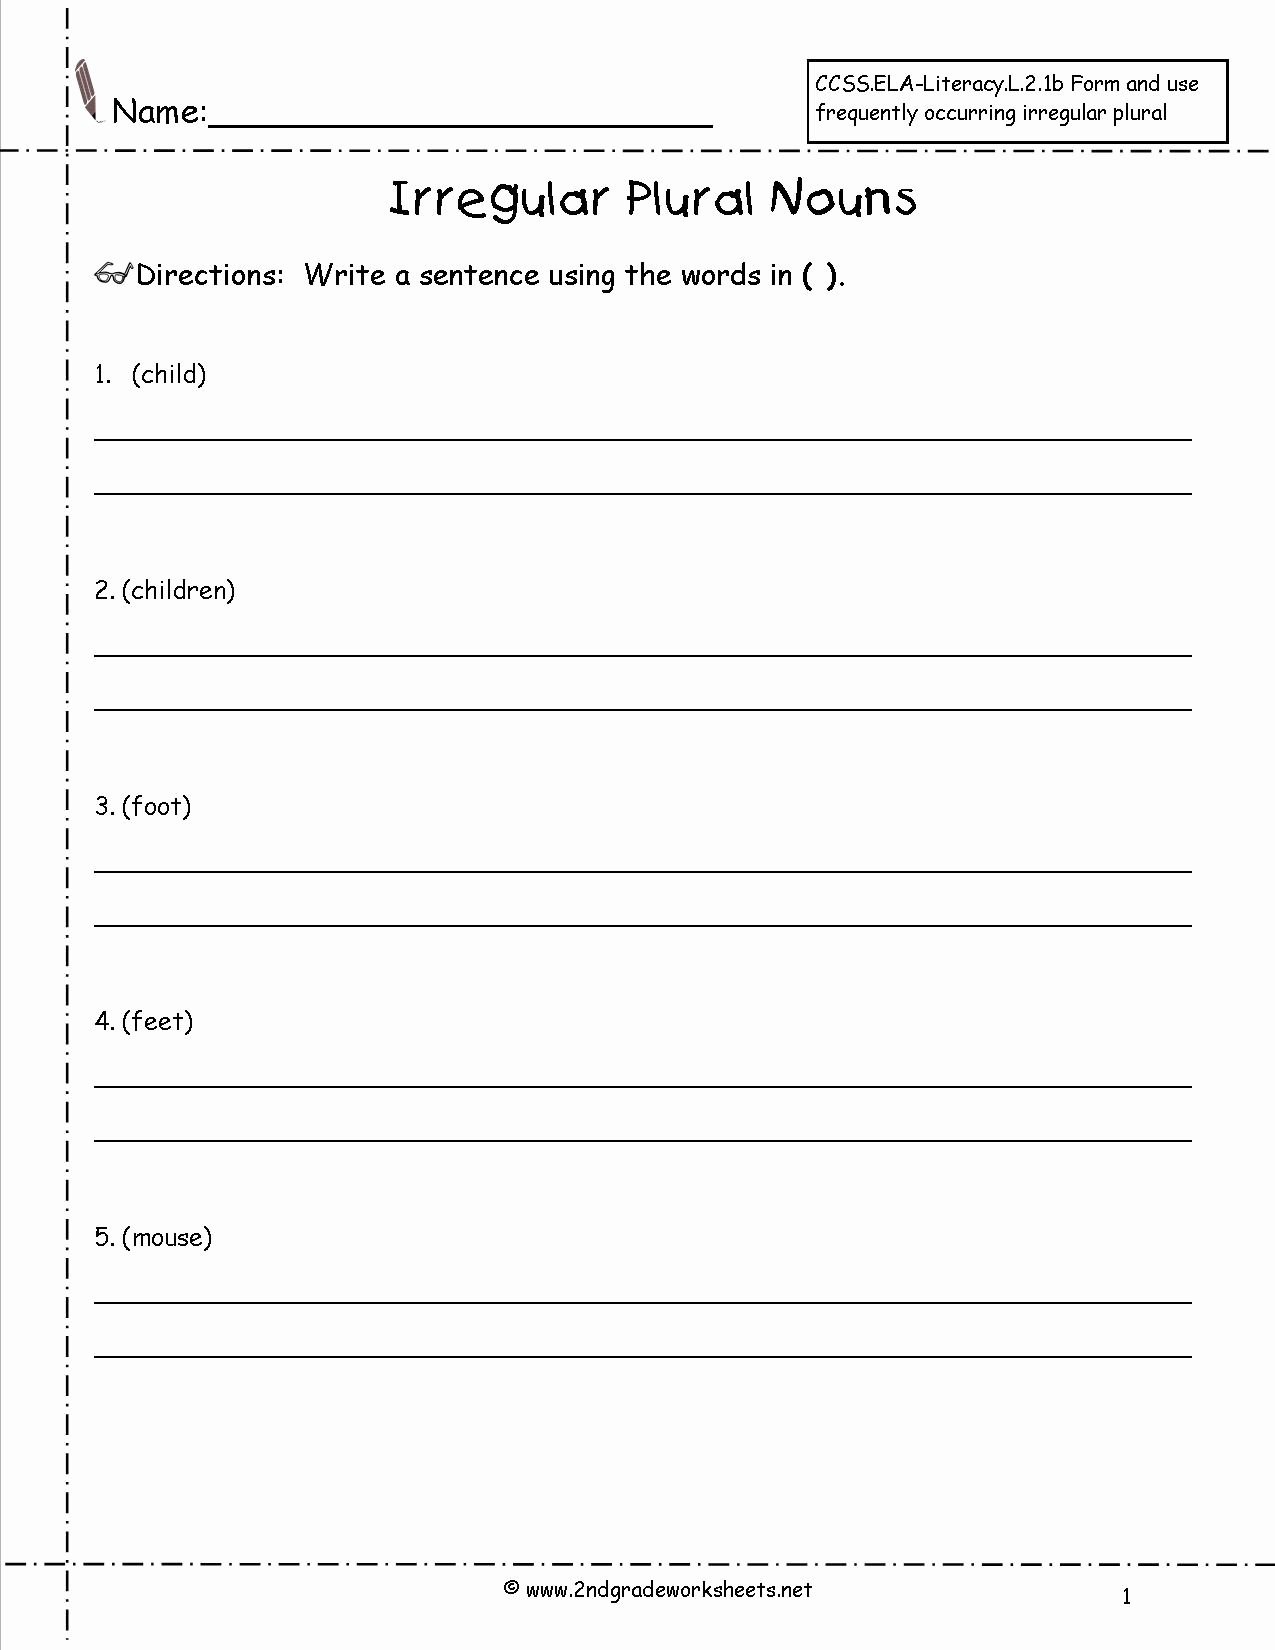 Irregular Plural Nouns Worksheet Beautiful Singular and Plural Nouns Worksheets